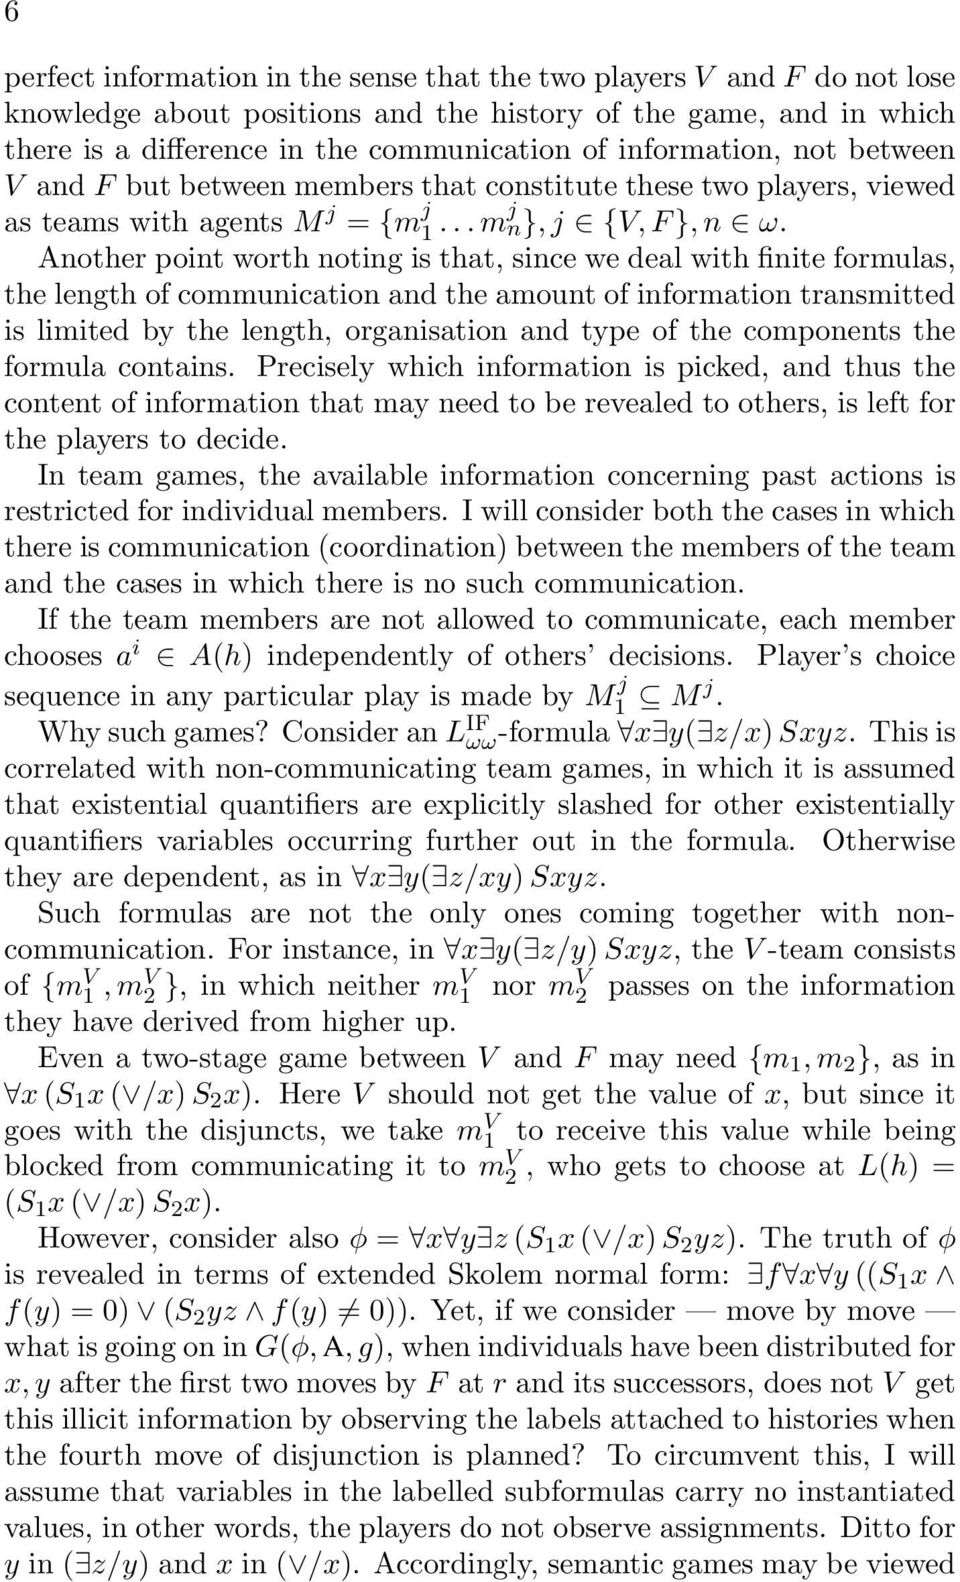 Another point worth noting is that, since we deal with finite formulas, the length of communication and the amount of information transmitted is limited by the length, organisation and type of the